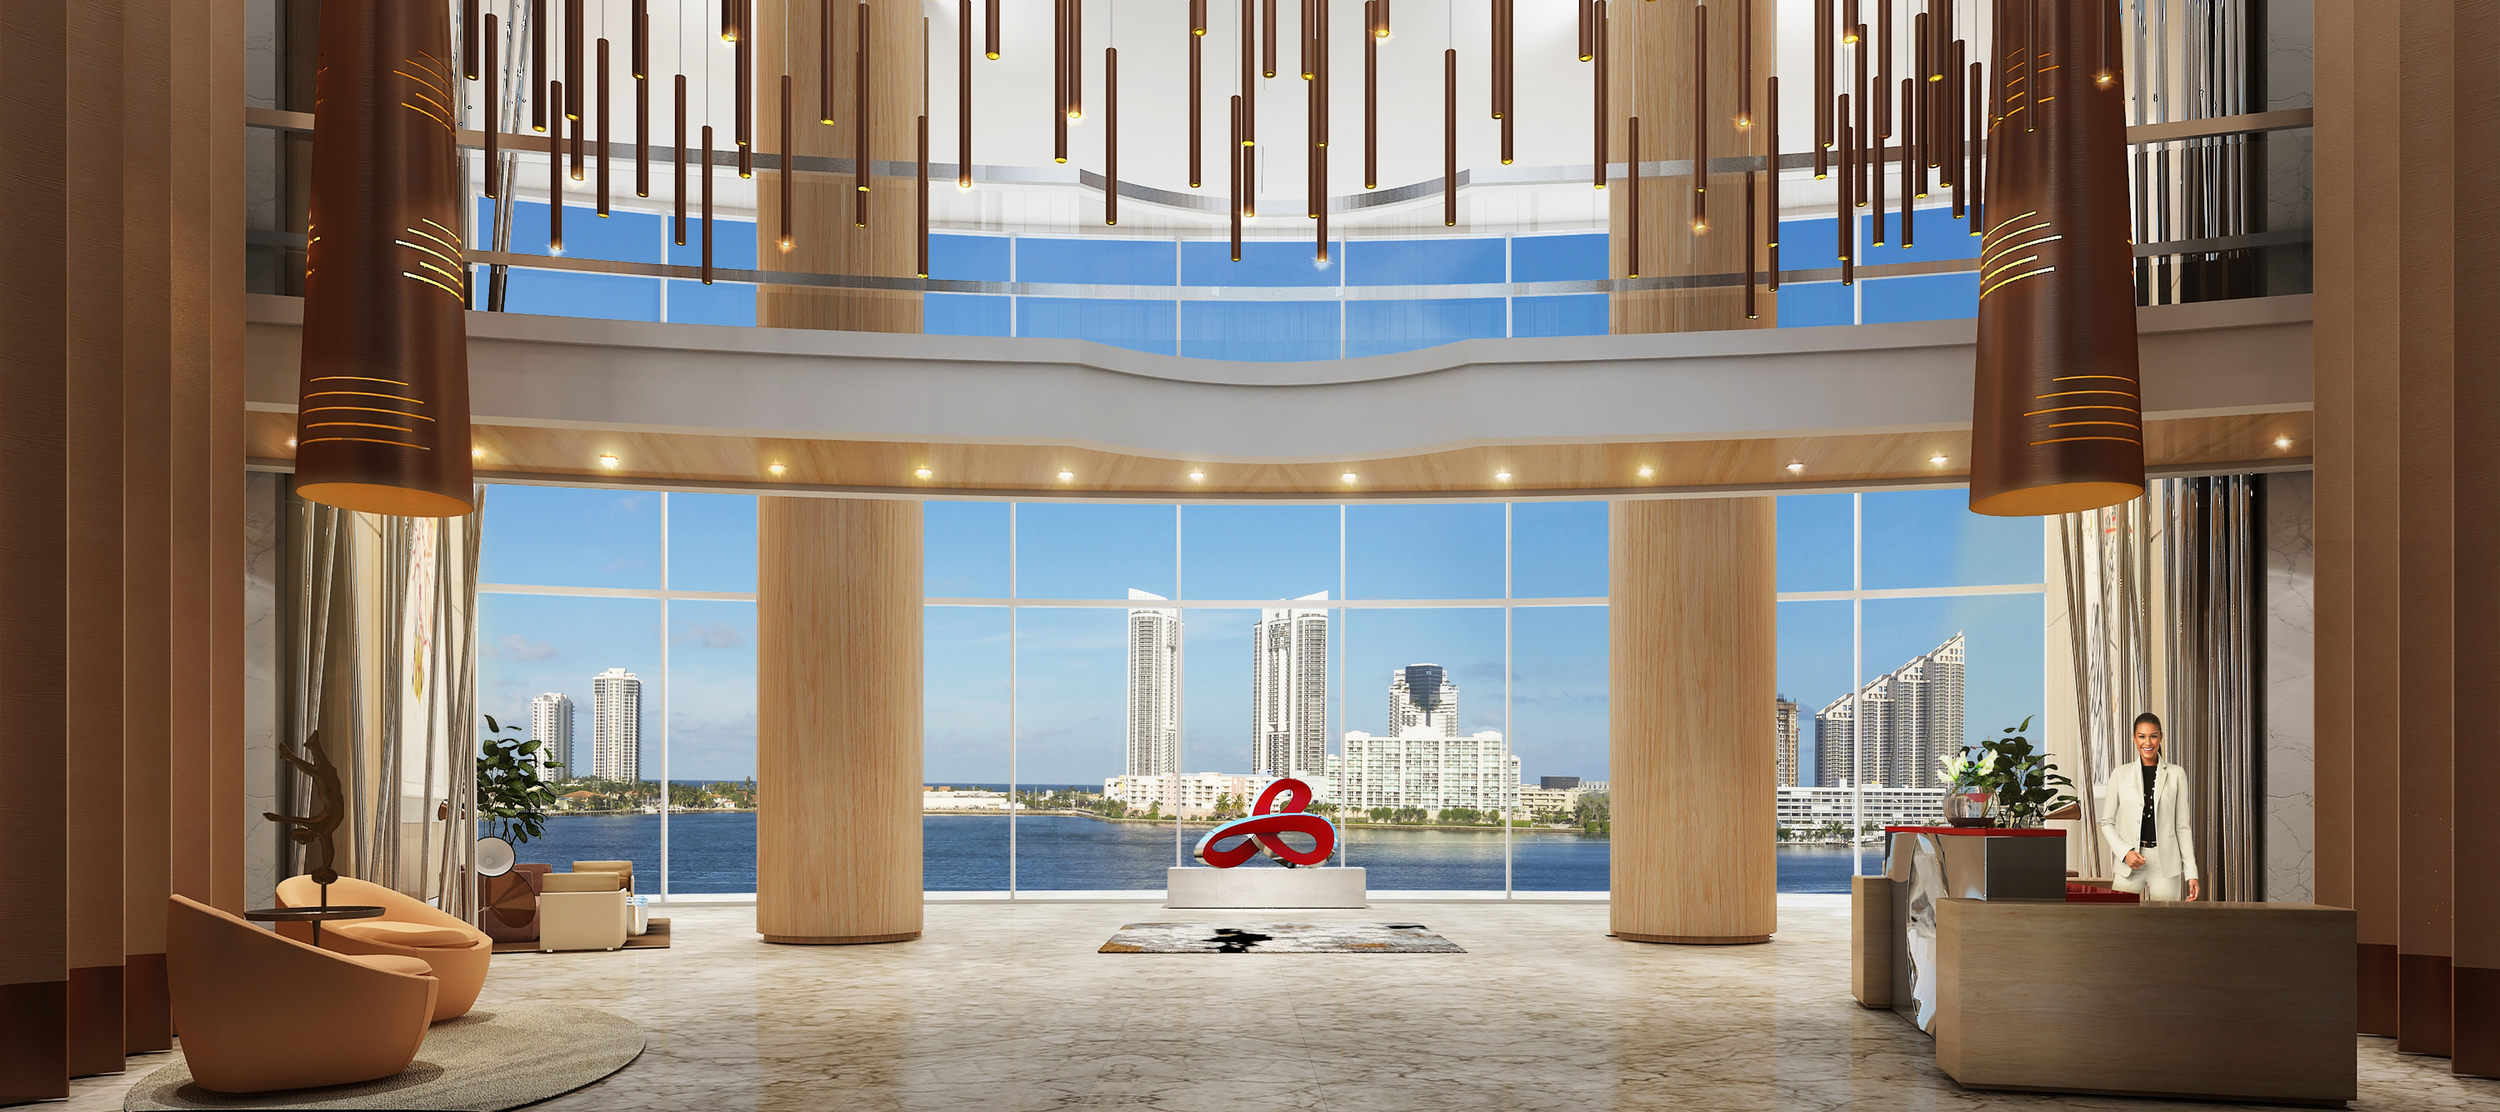 3-AMENITIES-PRIVE_LOBBY_RENDERING.jpeg